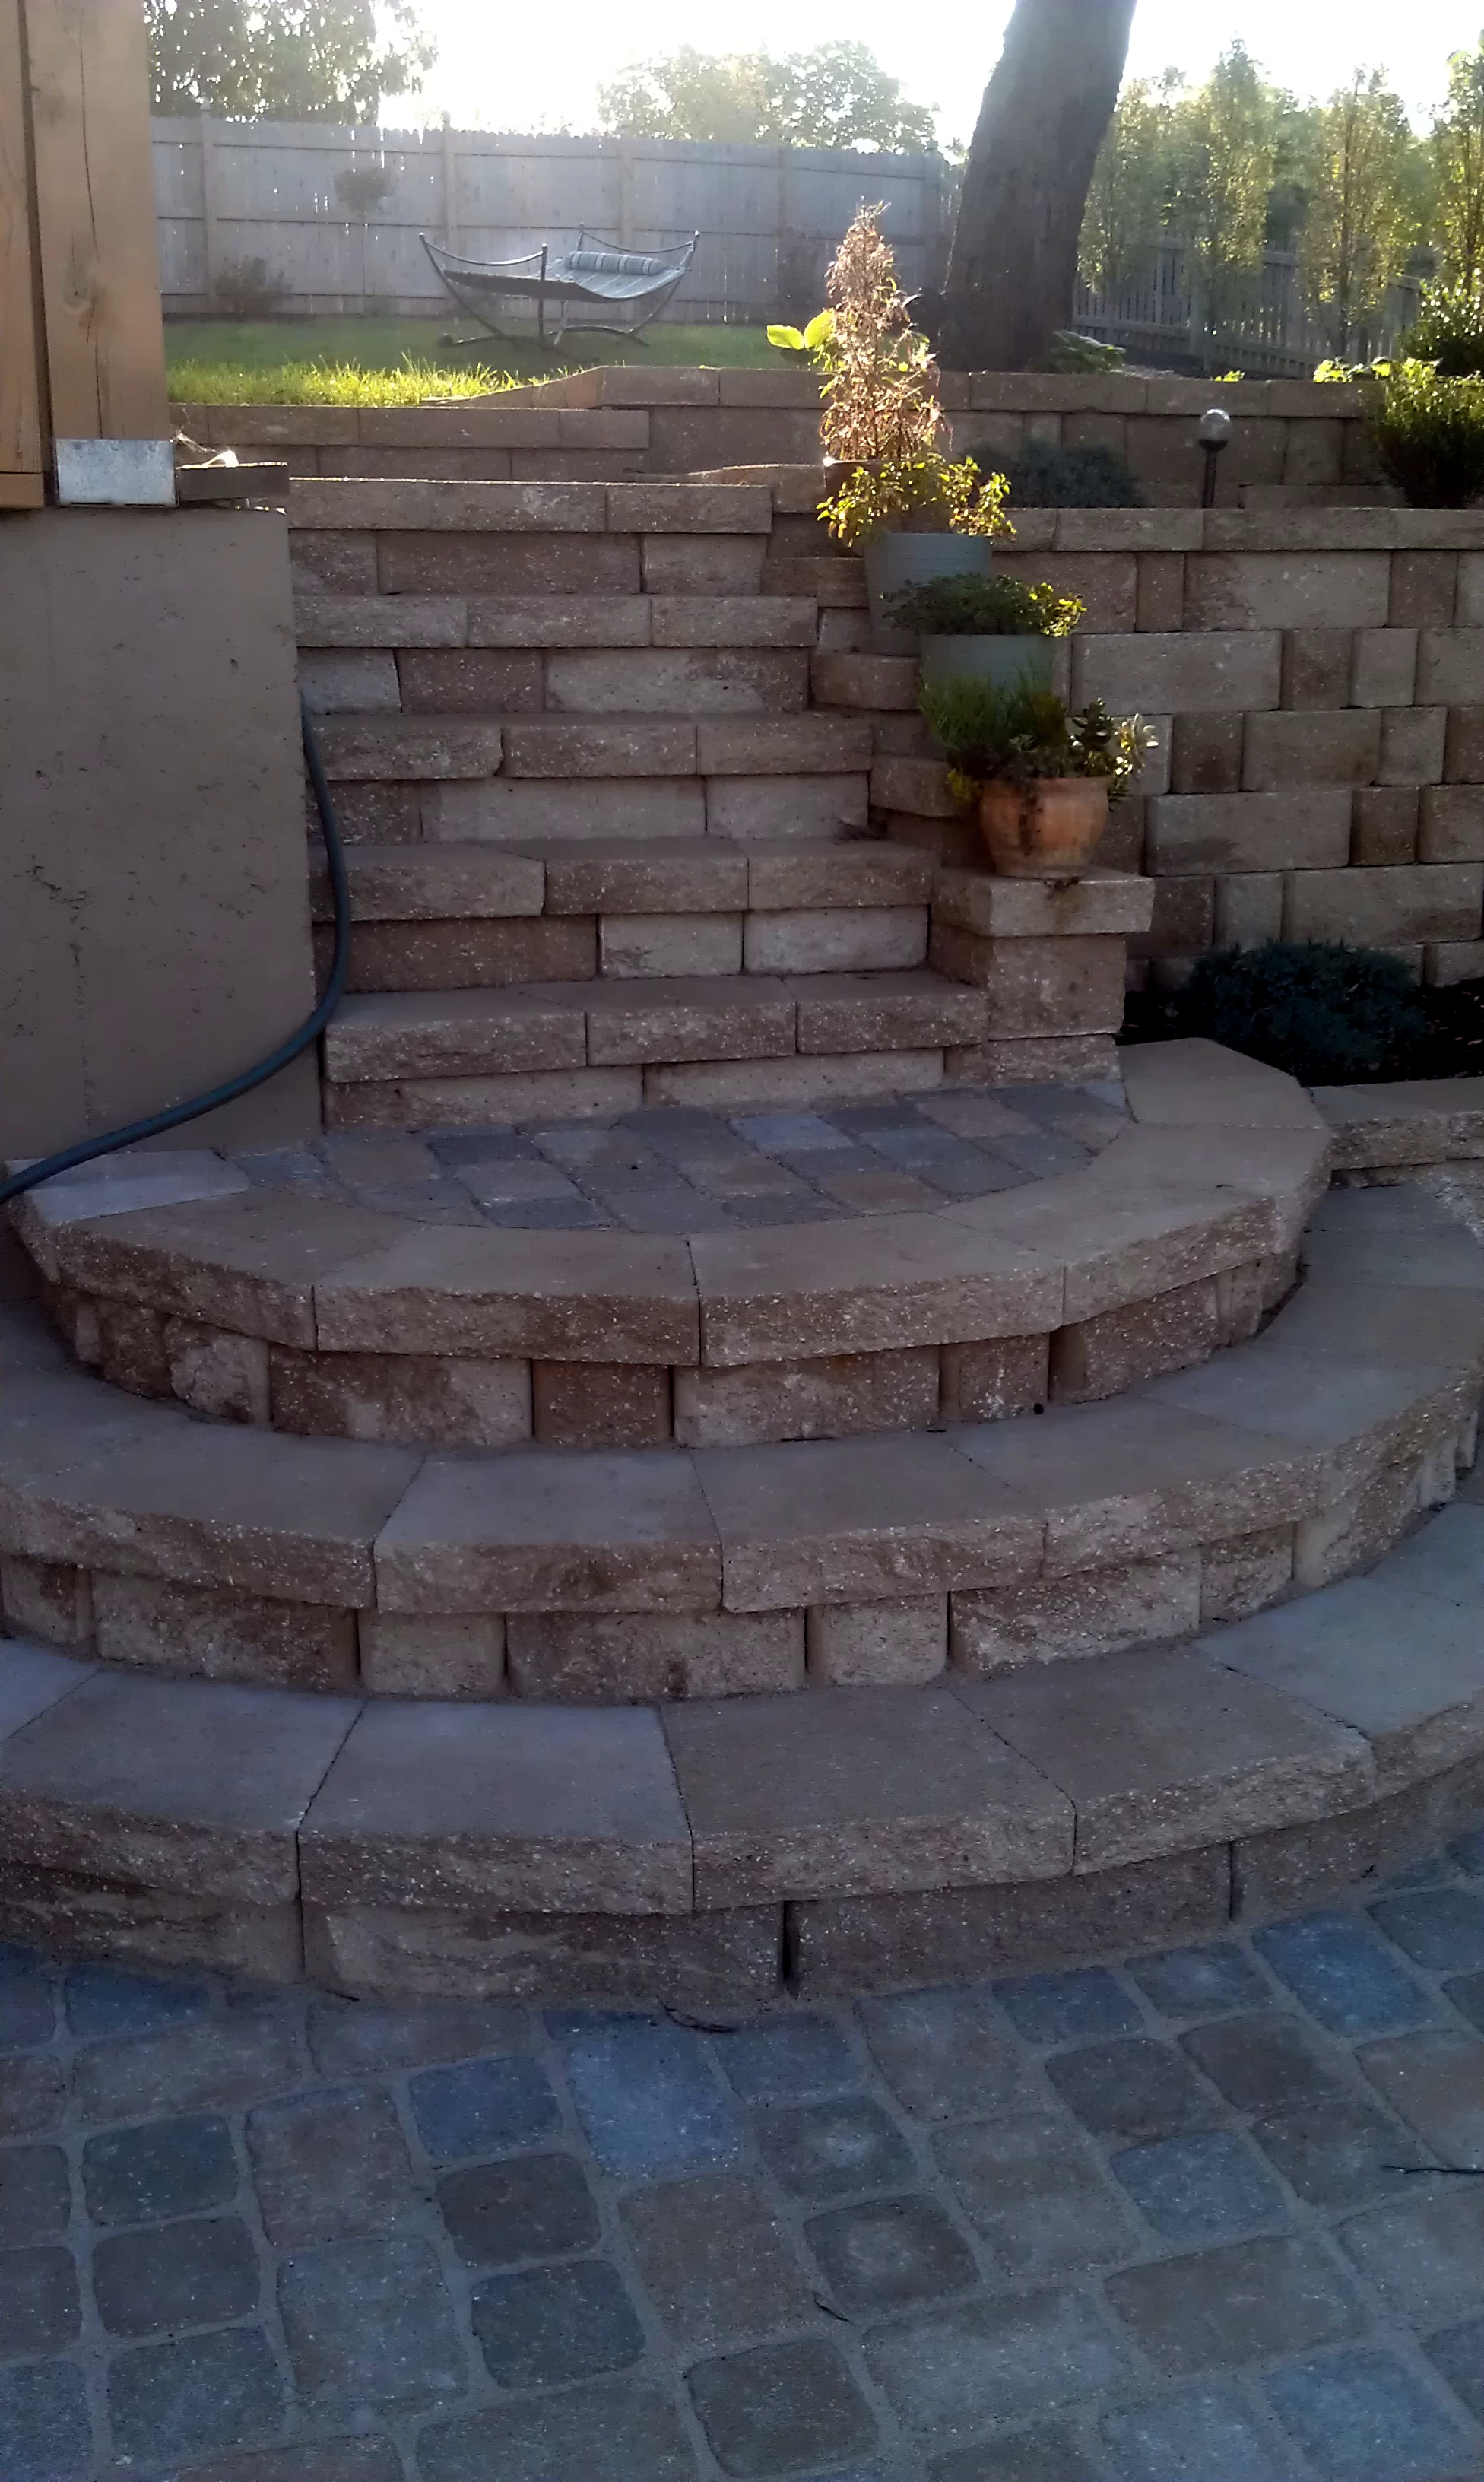 #11 View of new stairs with landings